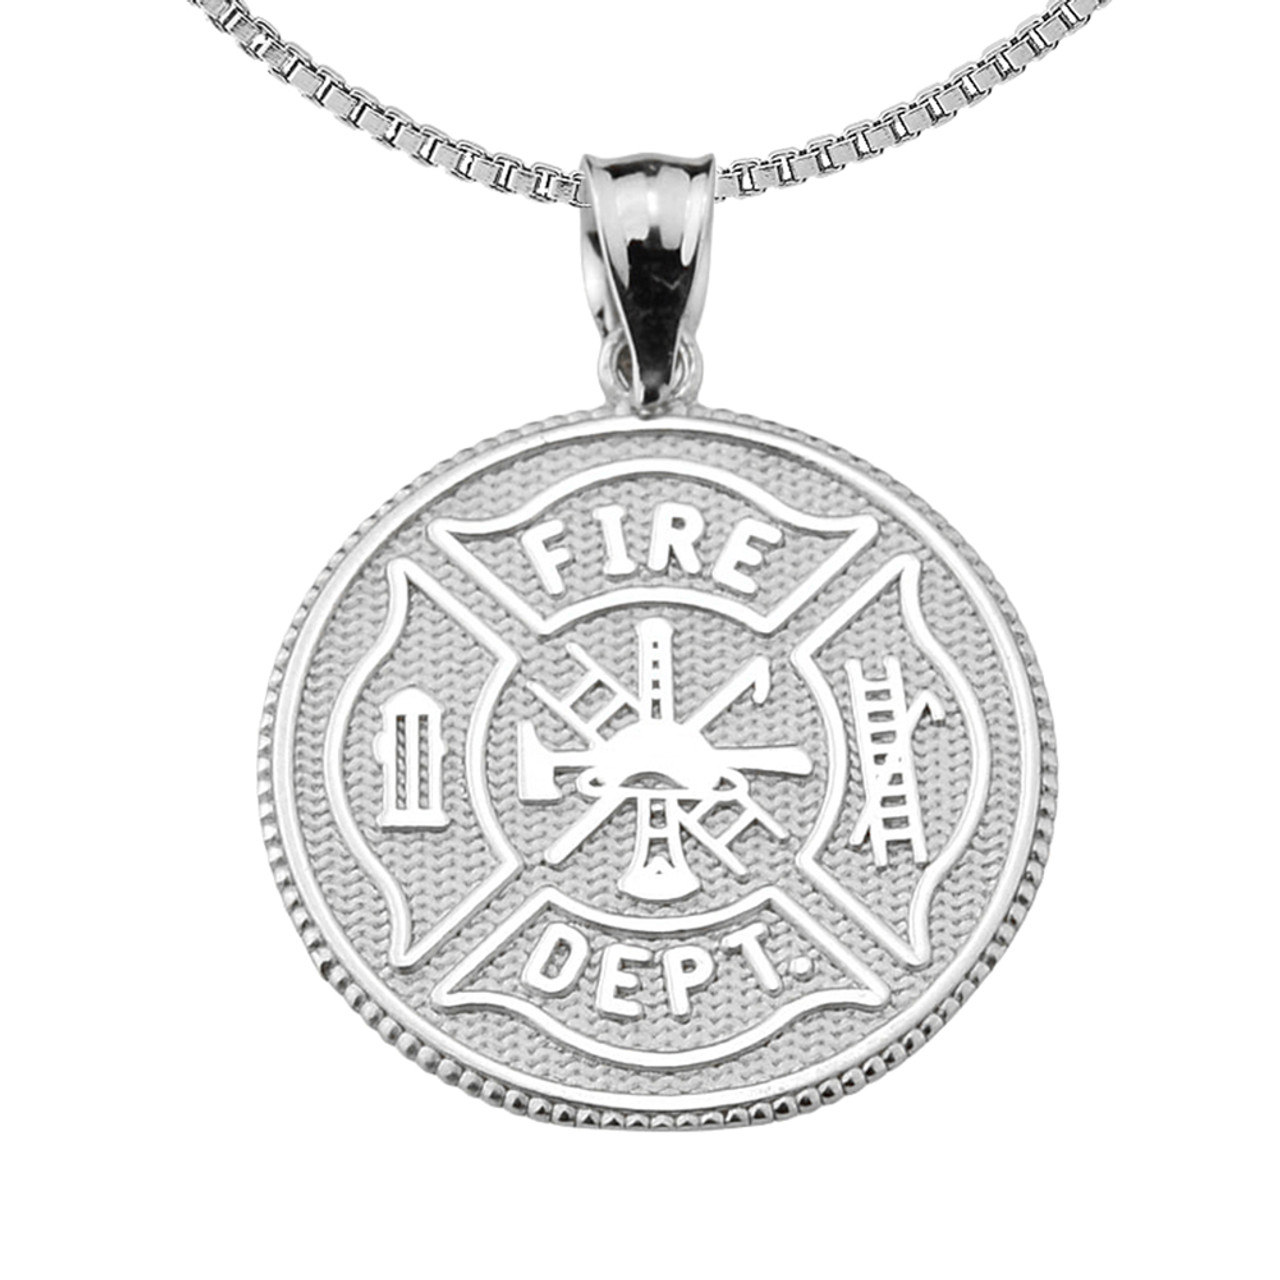 pendant cross emblem products dimensions firefighter maltese shineon